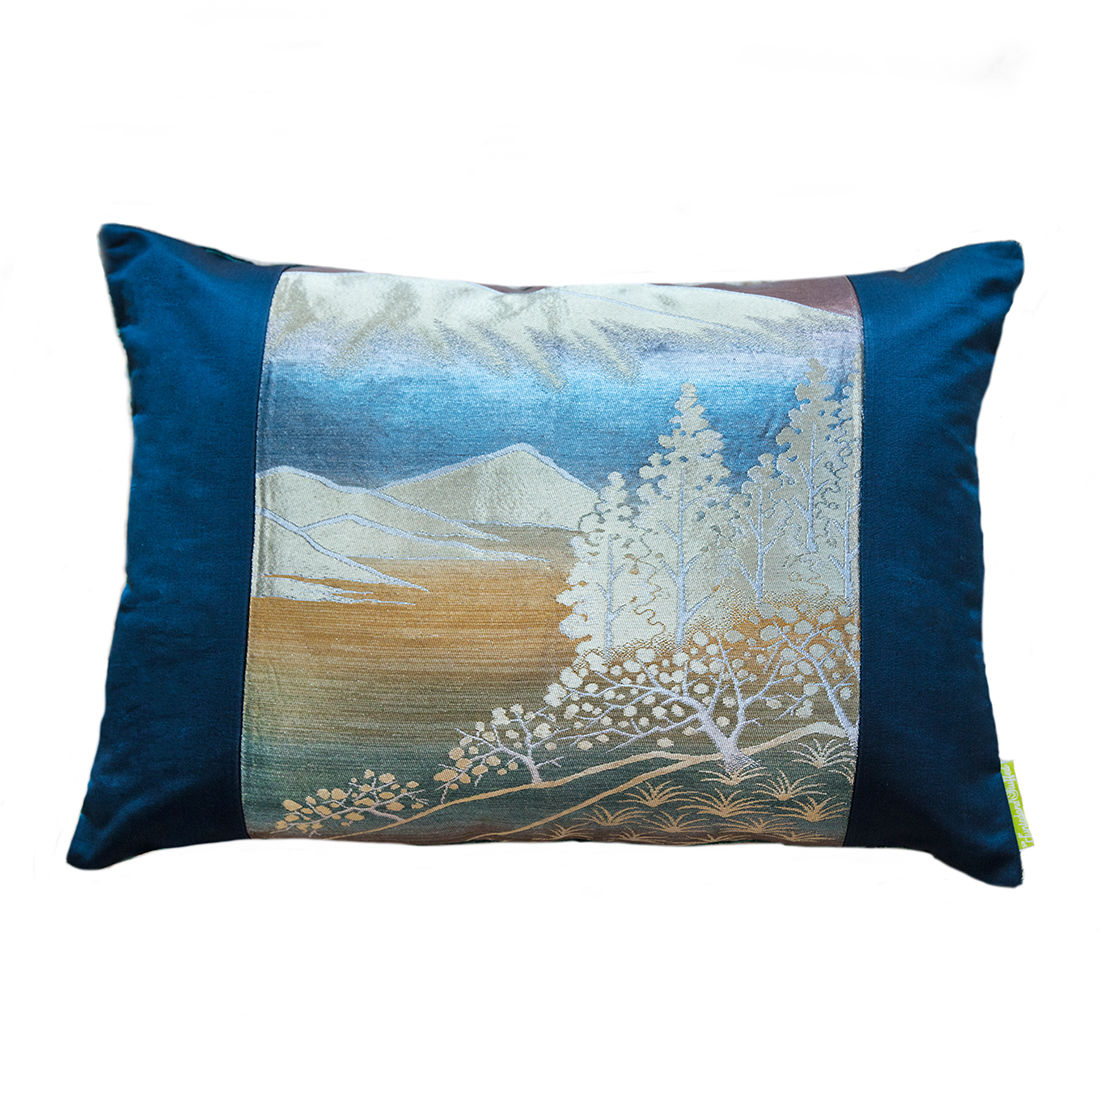 Blue Mountain Silk Velvet Cushion - product images  of